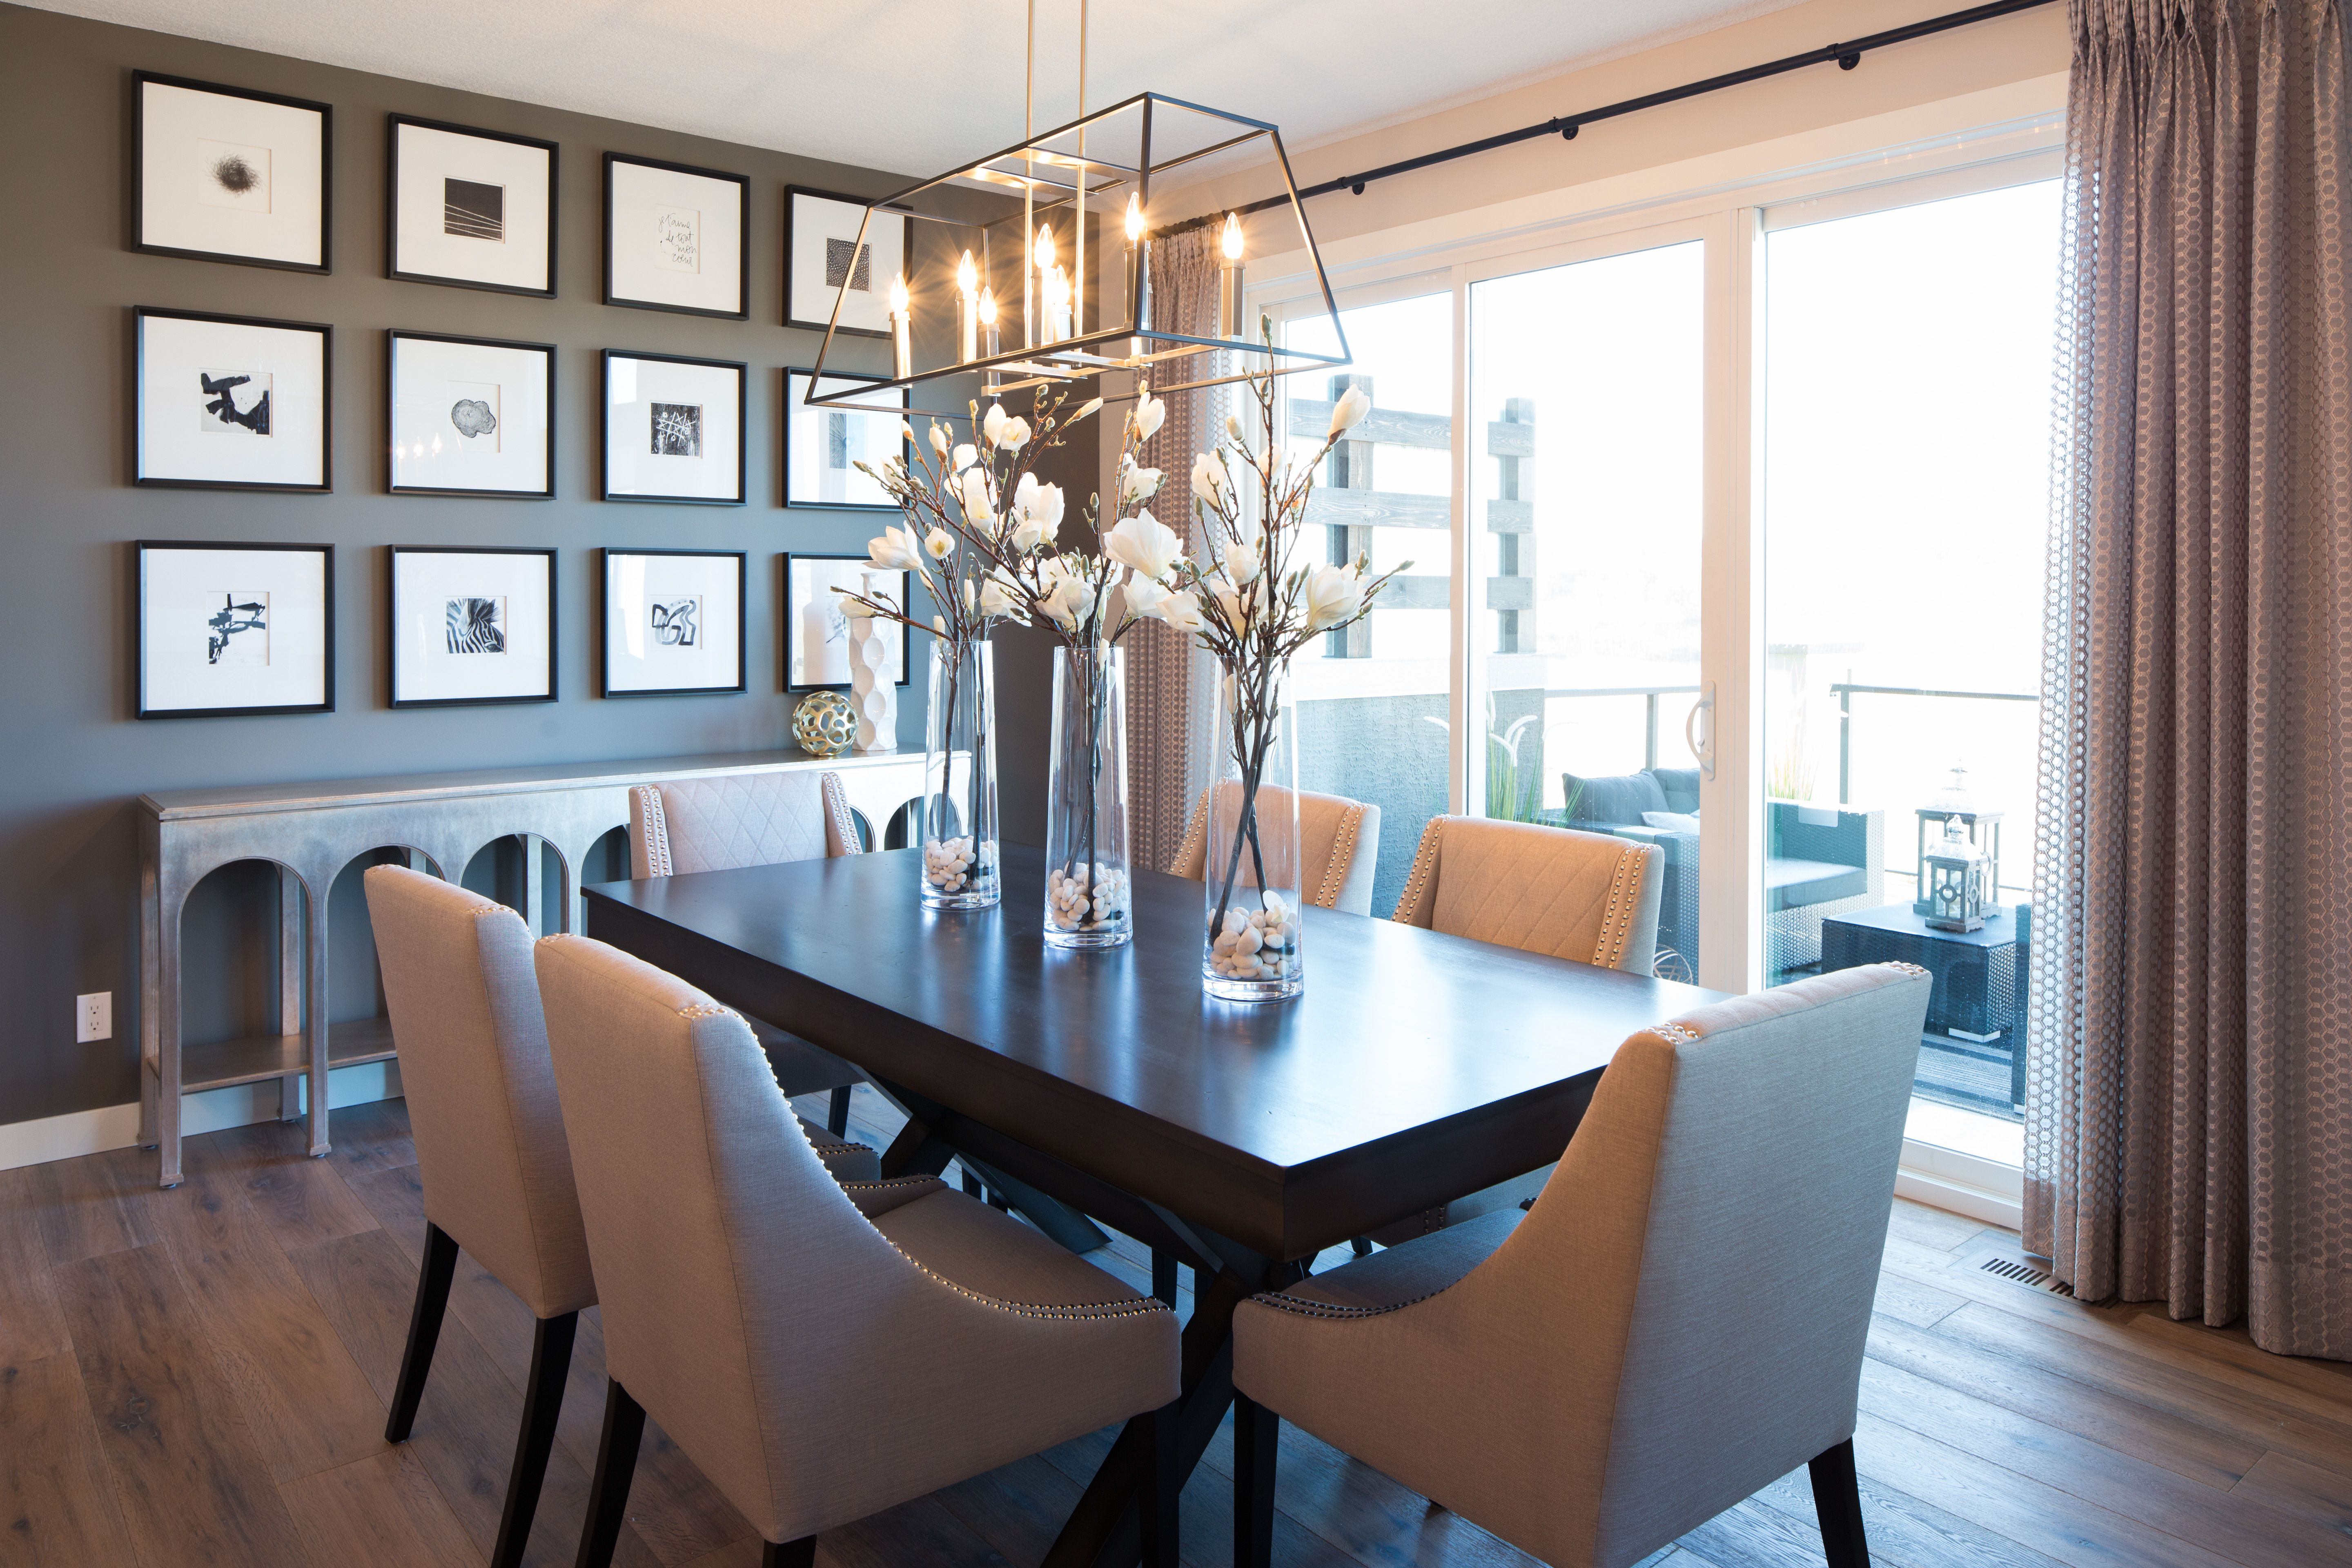 Projects rochelle cote the dining room from the belvedere show the dining room from the belvedere show home 65 dzzzfo